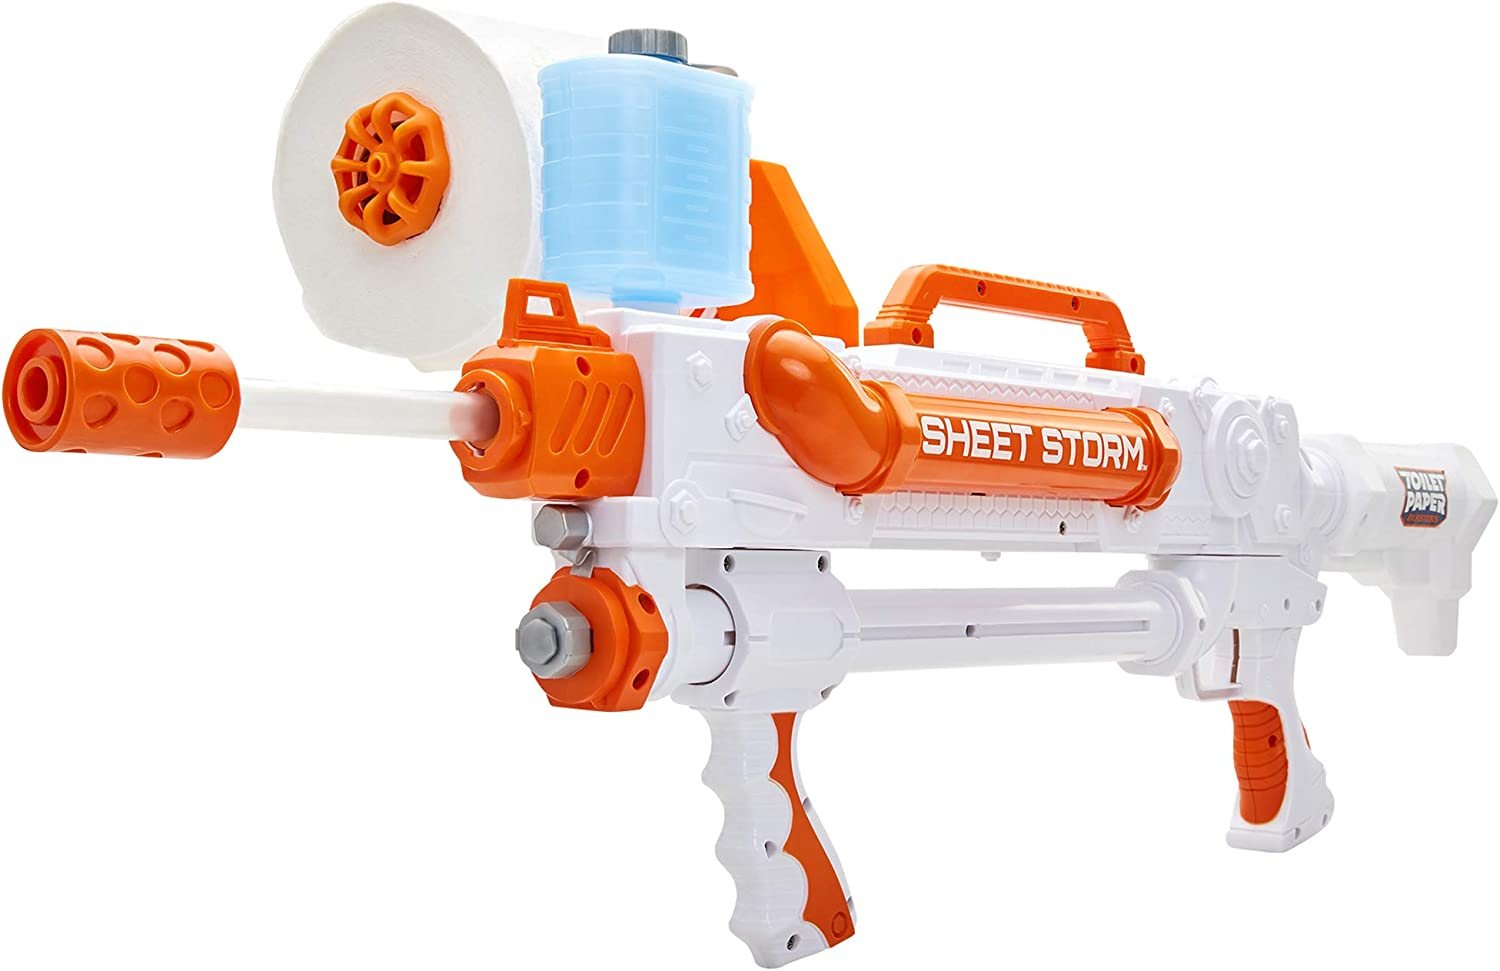 Toilet Paper Blaster Rapid-Fire Sheet Storm